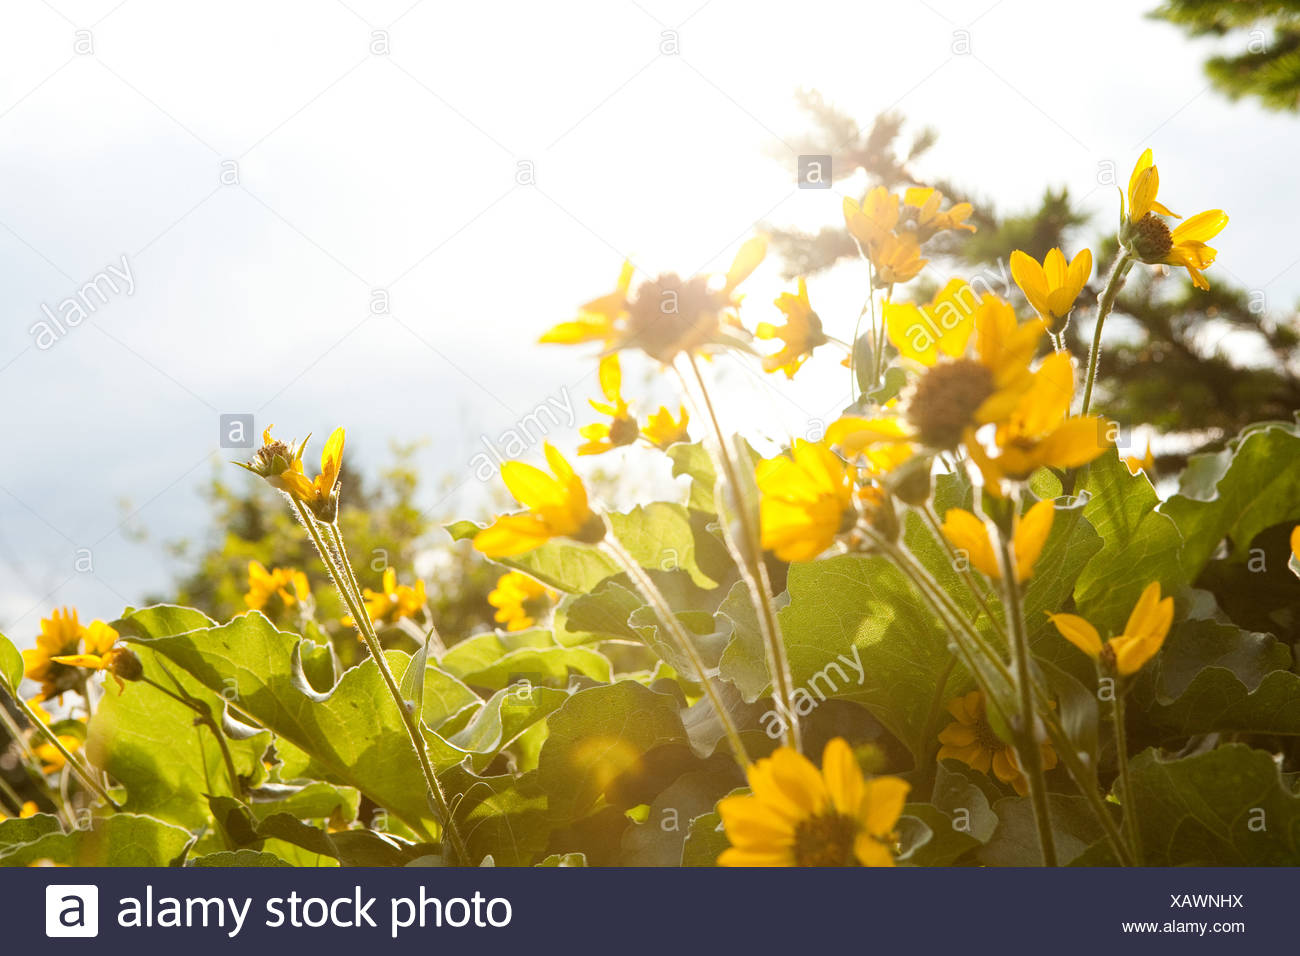 Yellow flowers, close up - Stock Image